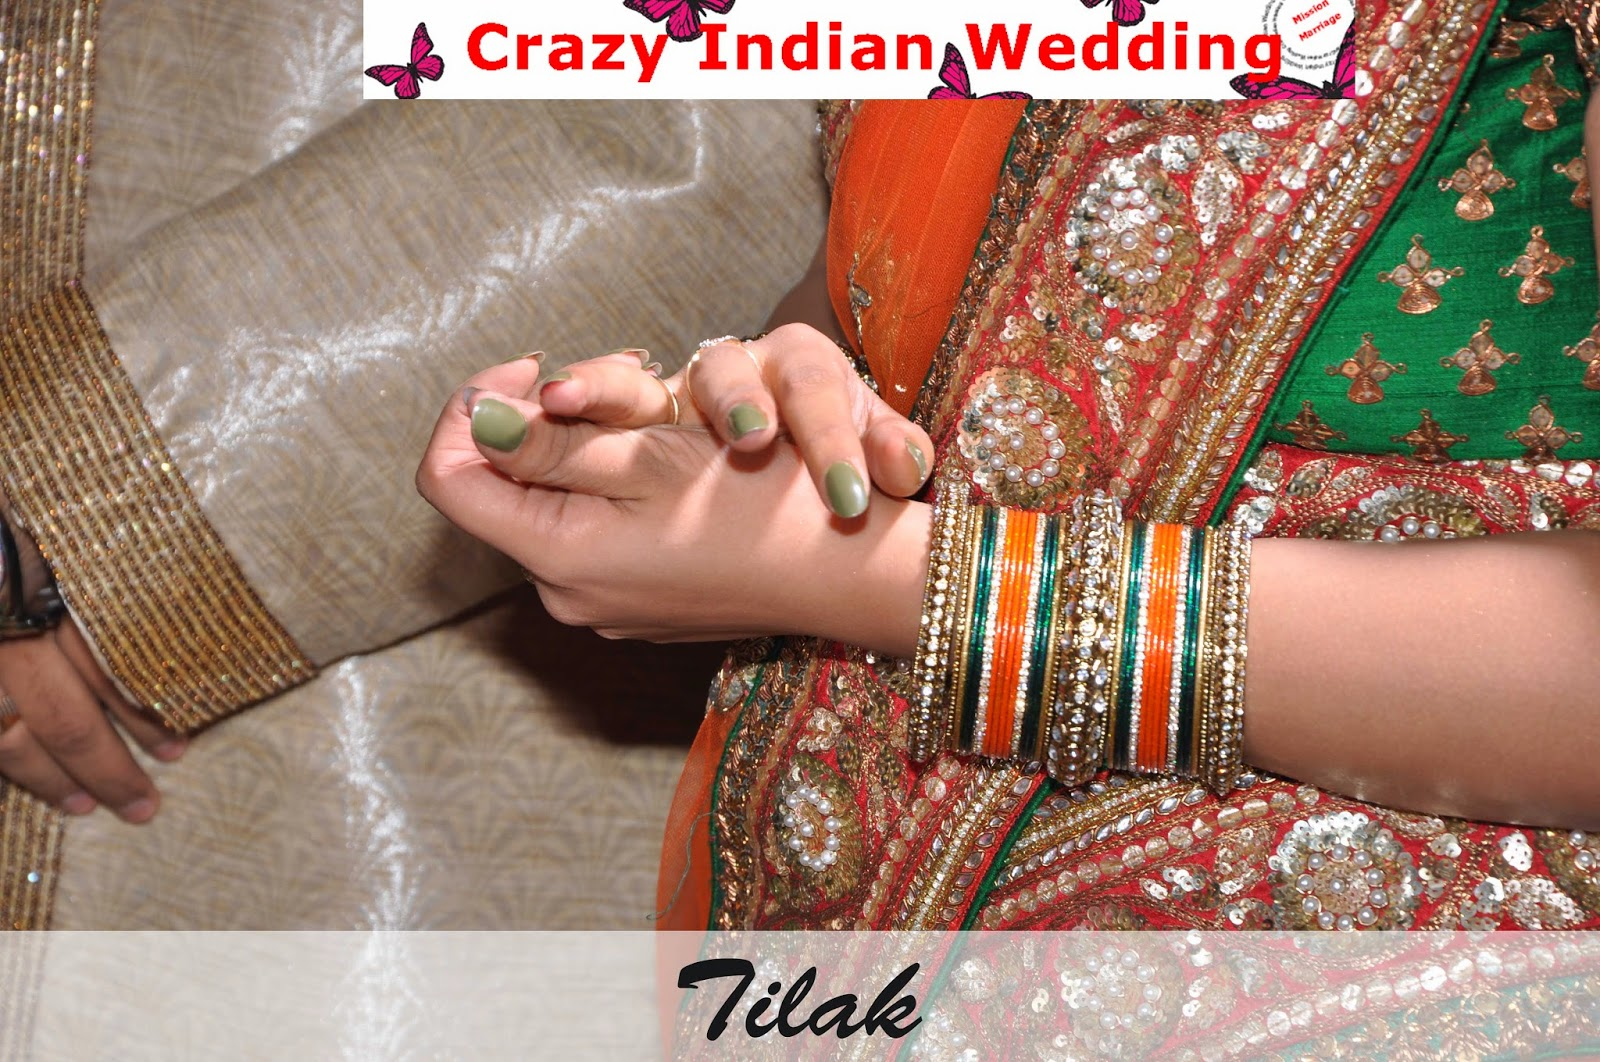 Tilak crazy indian wedding